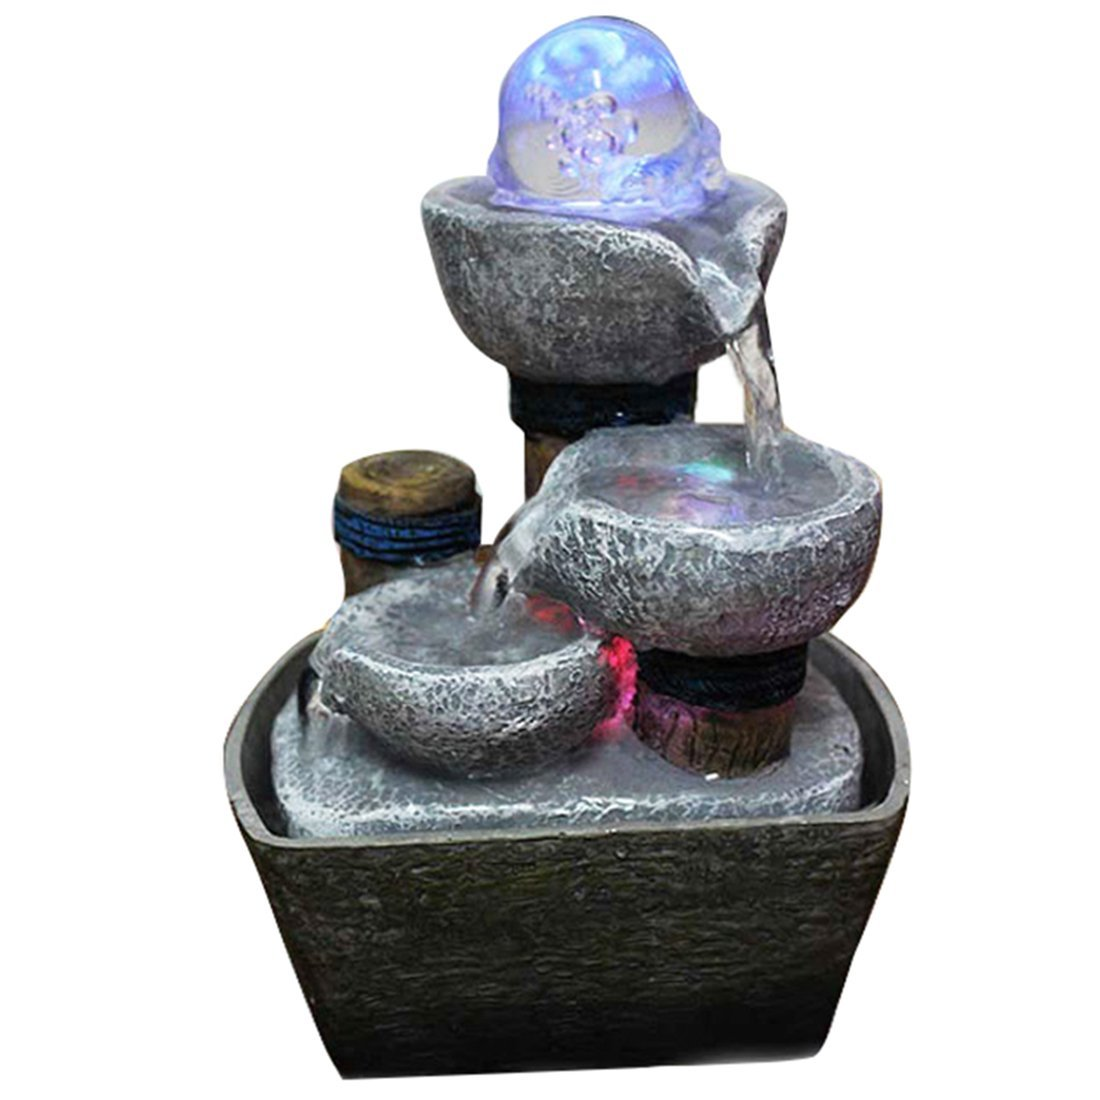 Indoor Tabletop Fountain Water Feature with LED Lights and Magic Crystal Ball Home Decor Garden Feng Shui Ornaments Ideal Gift (B 140x100x210mm)